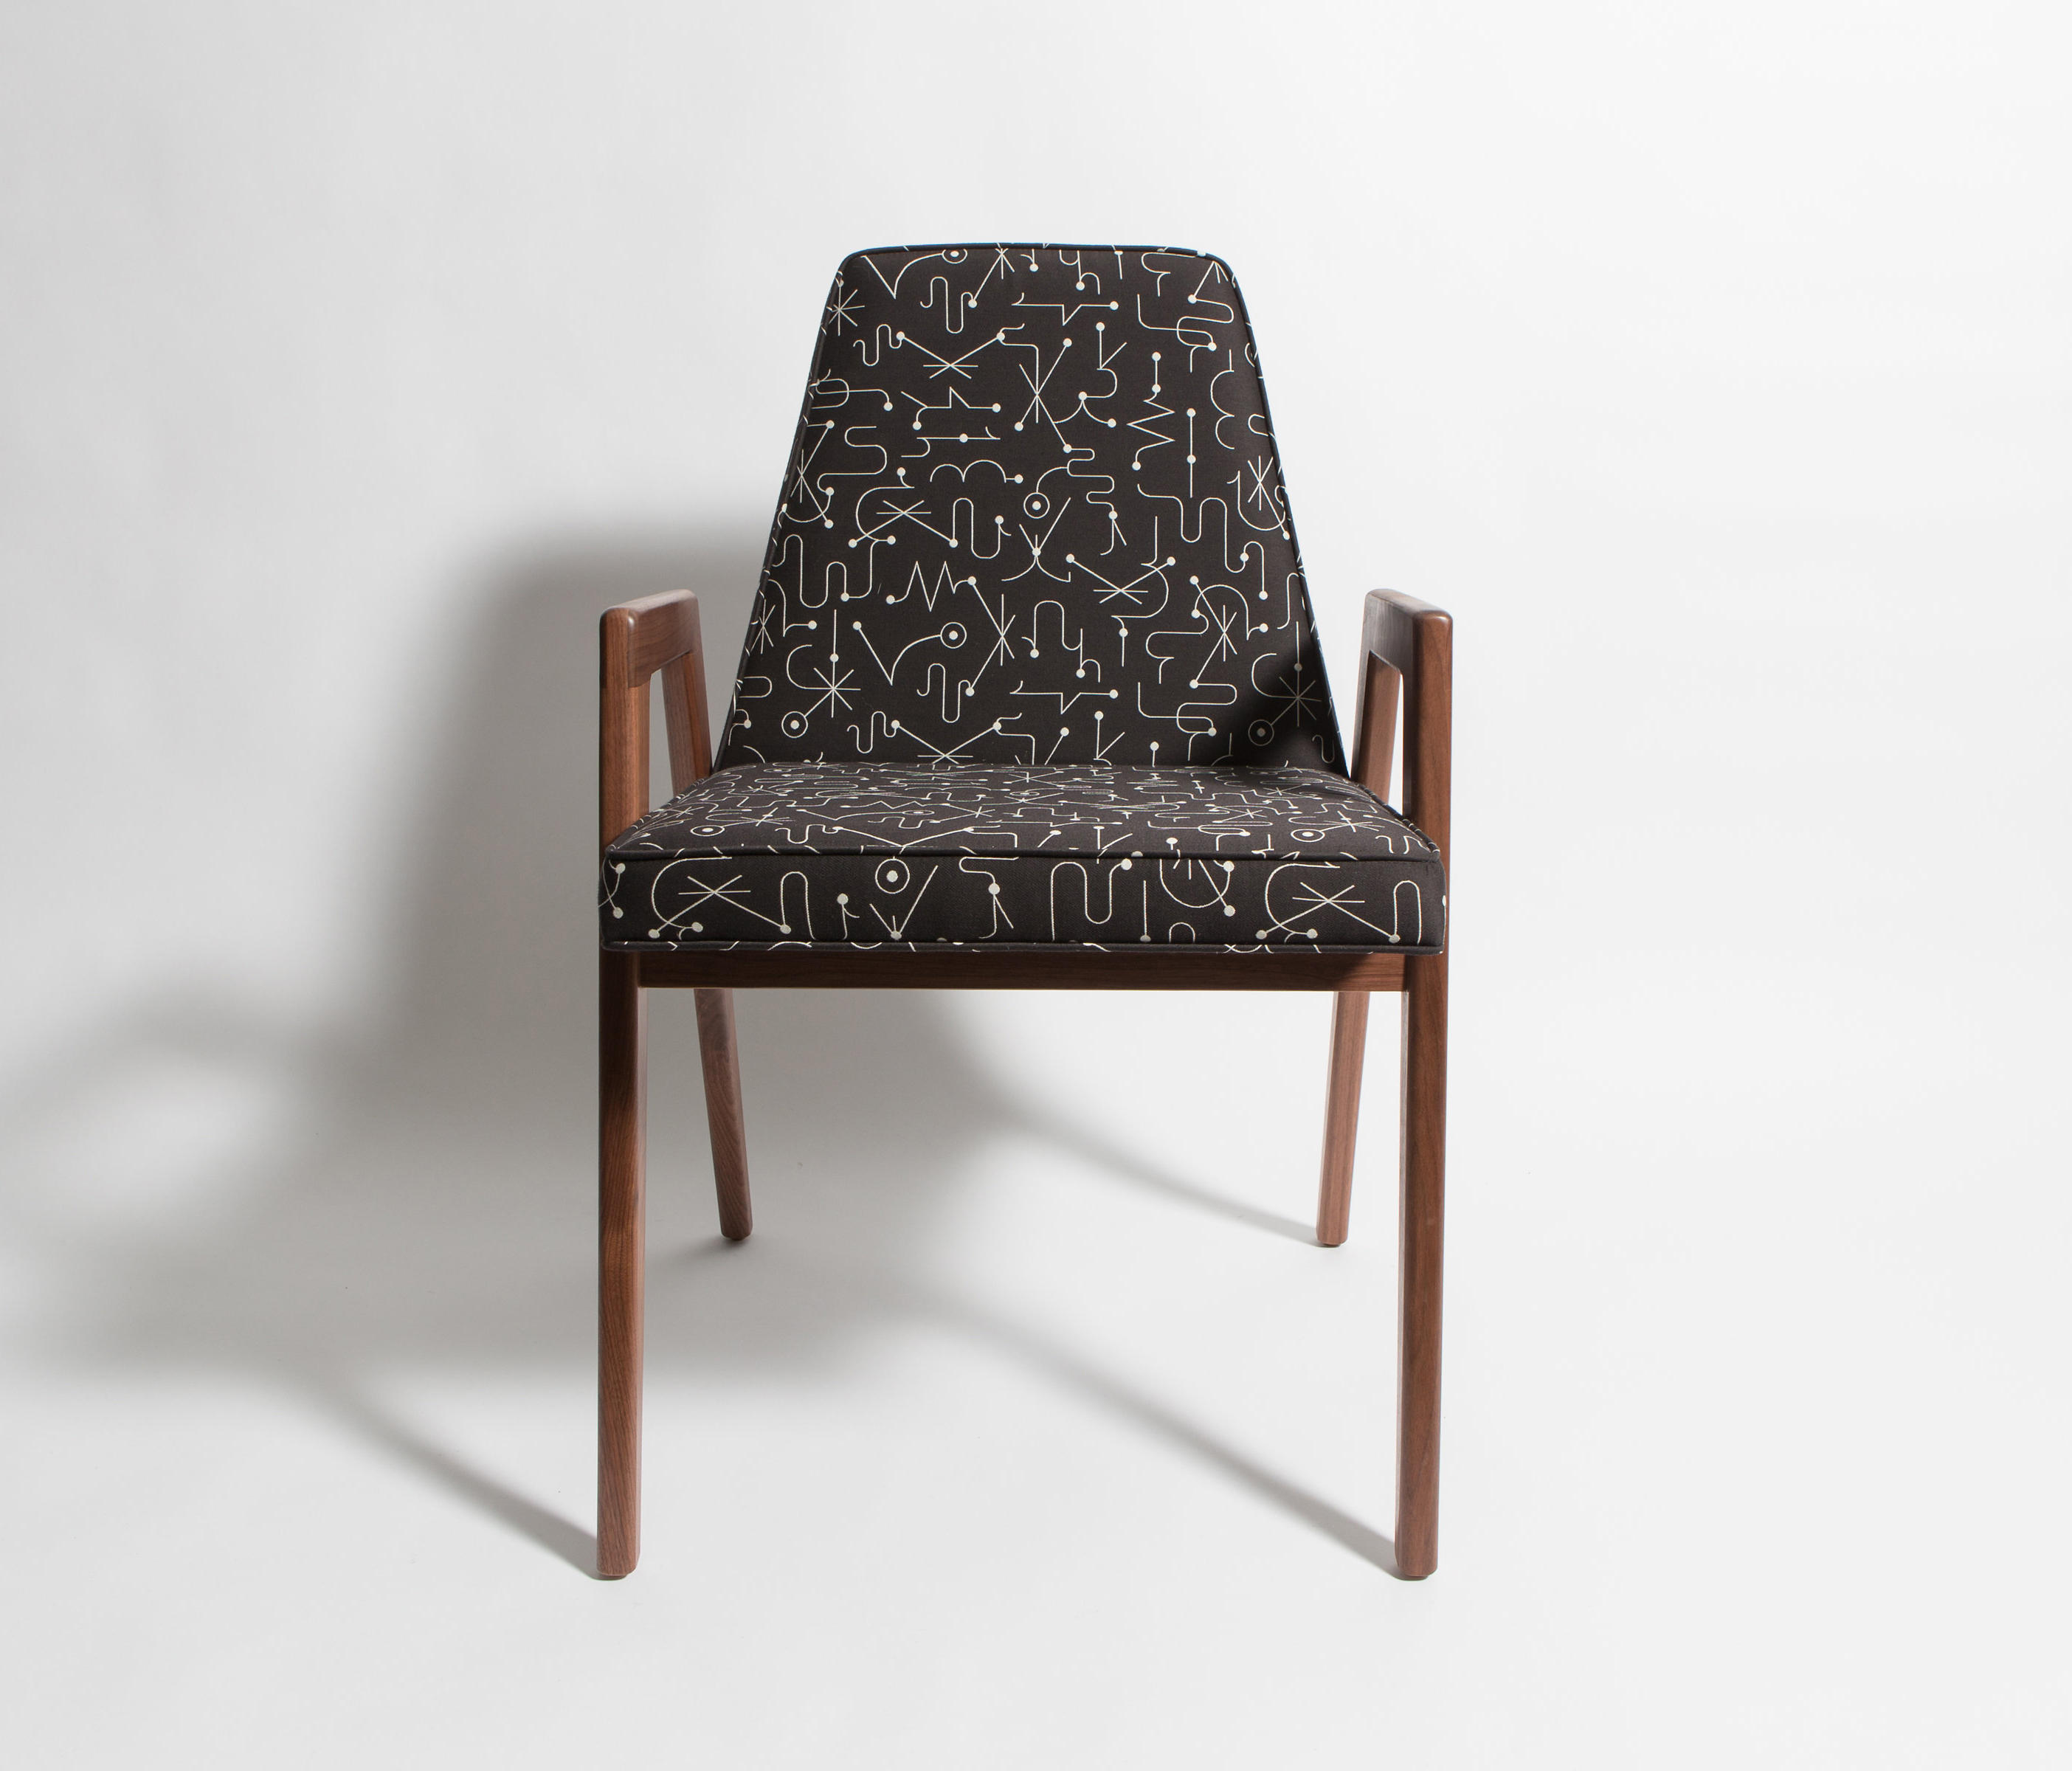 UPHOLSTERED DINING CHAIR Restaurant chairs from Smilow Design